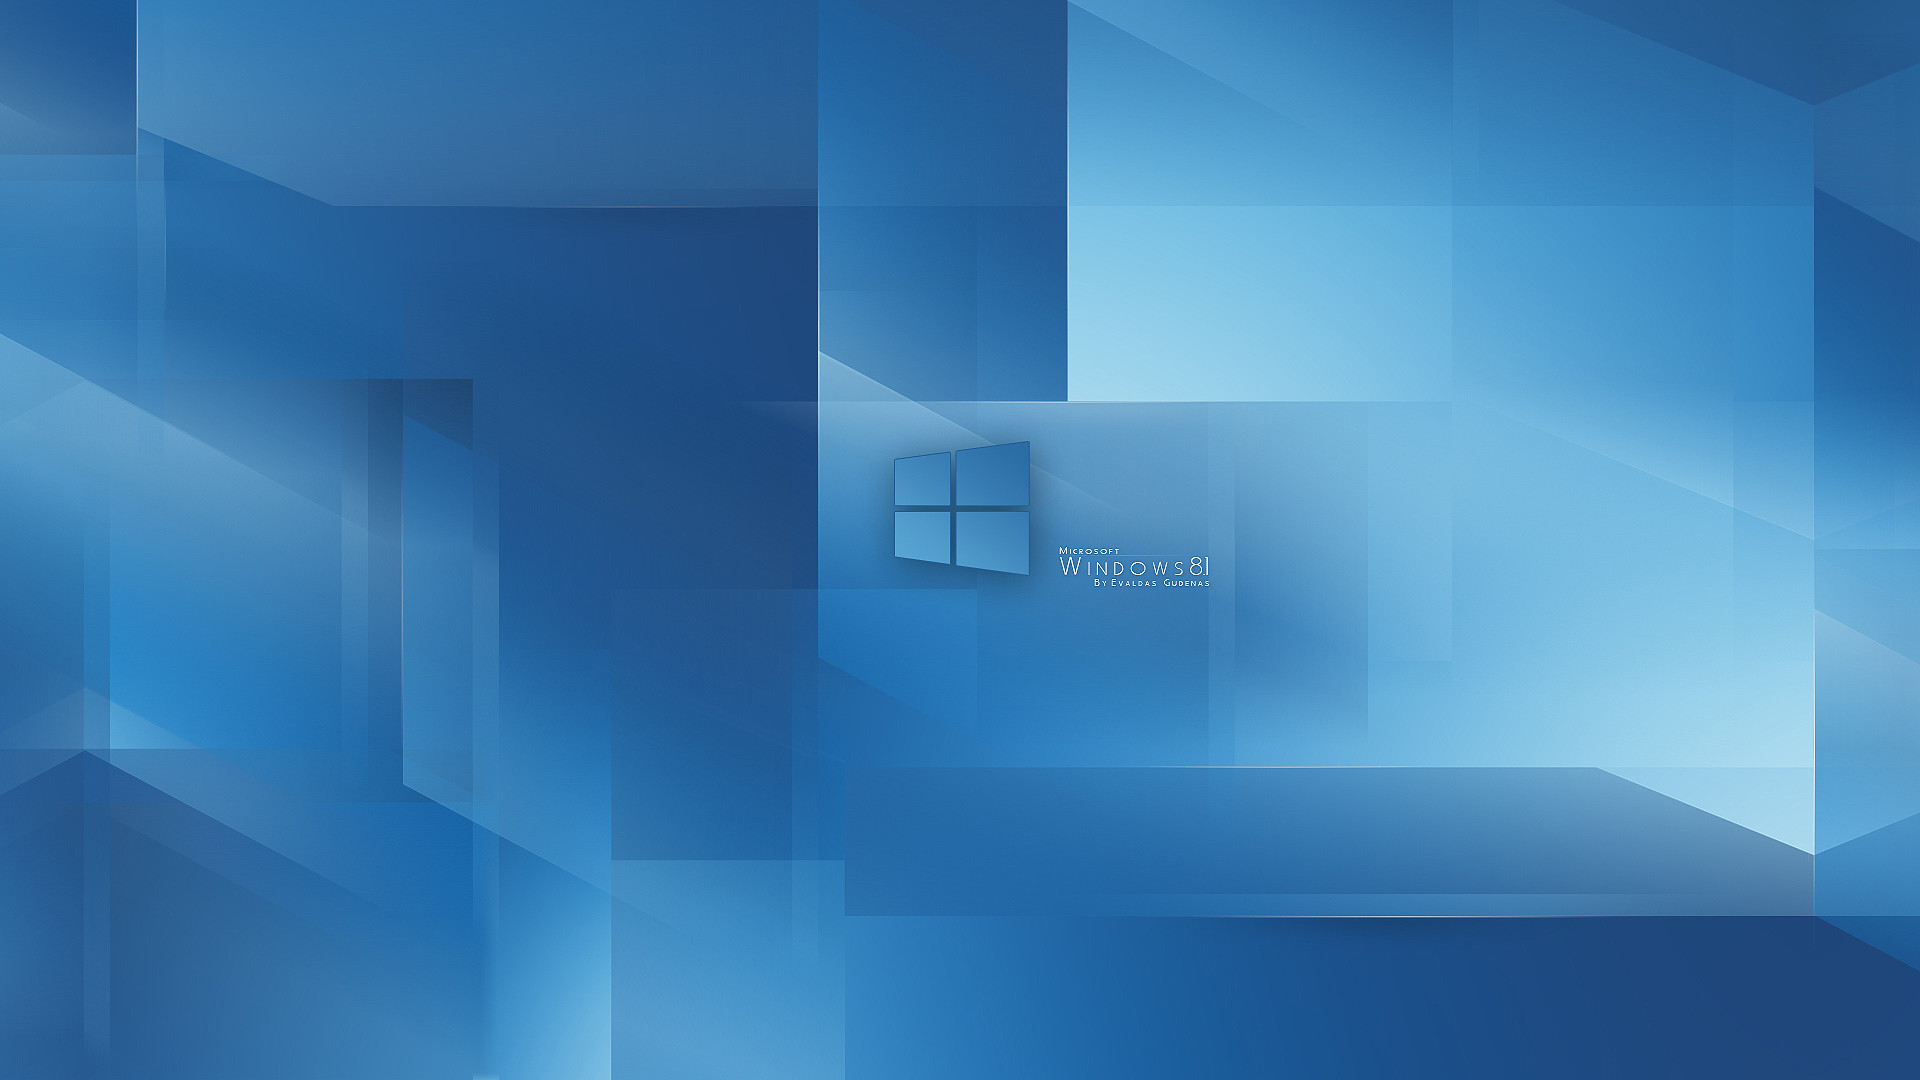 More Windows 8.1 wallpapers | Windows 8 wallpapers